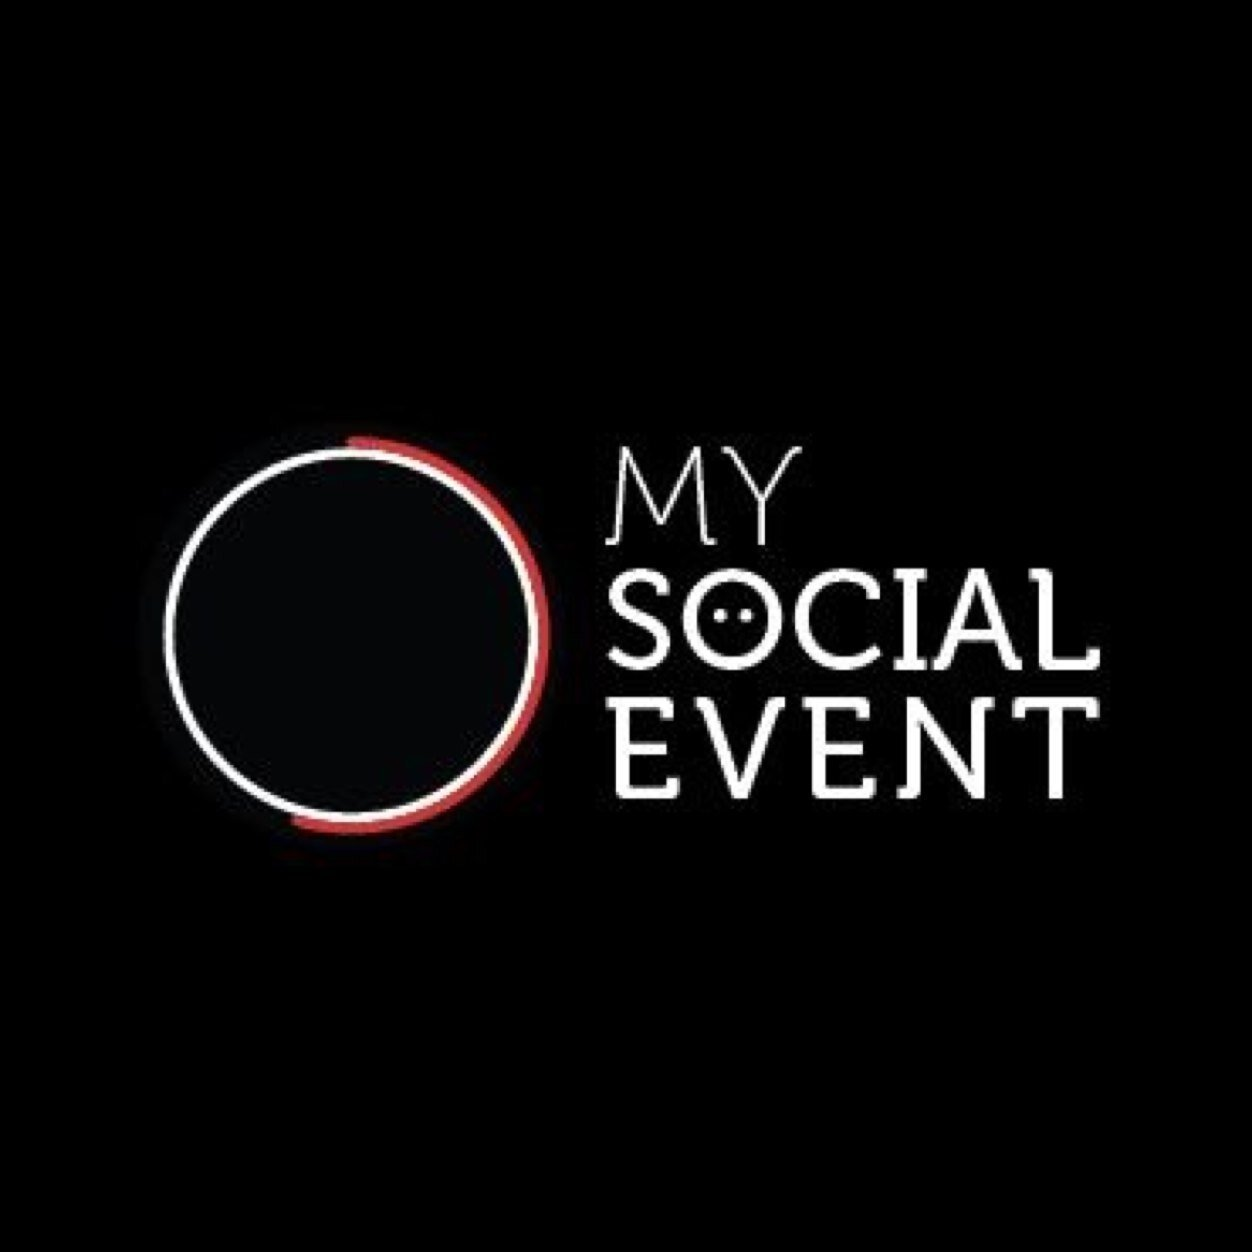 MY SOCIAL EVENT